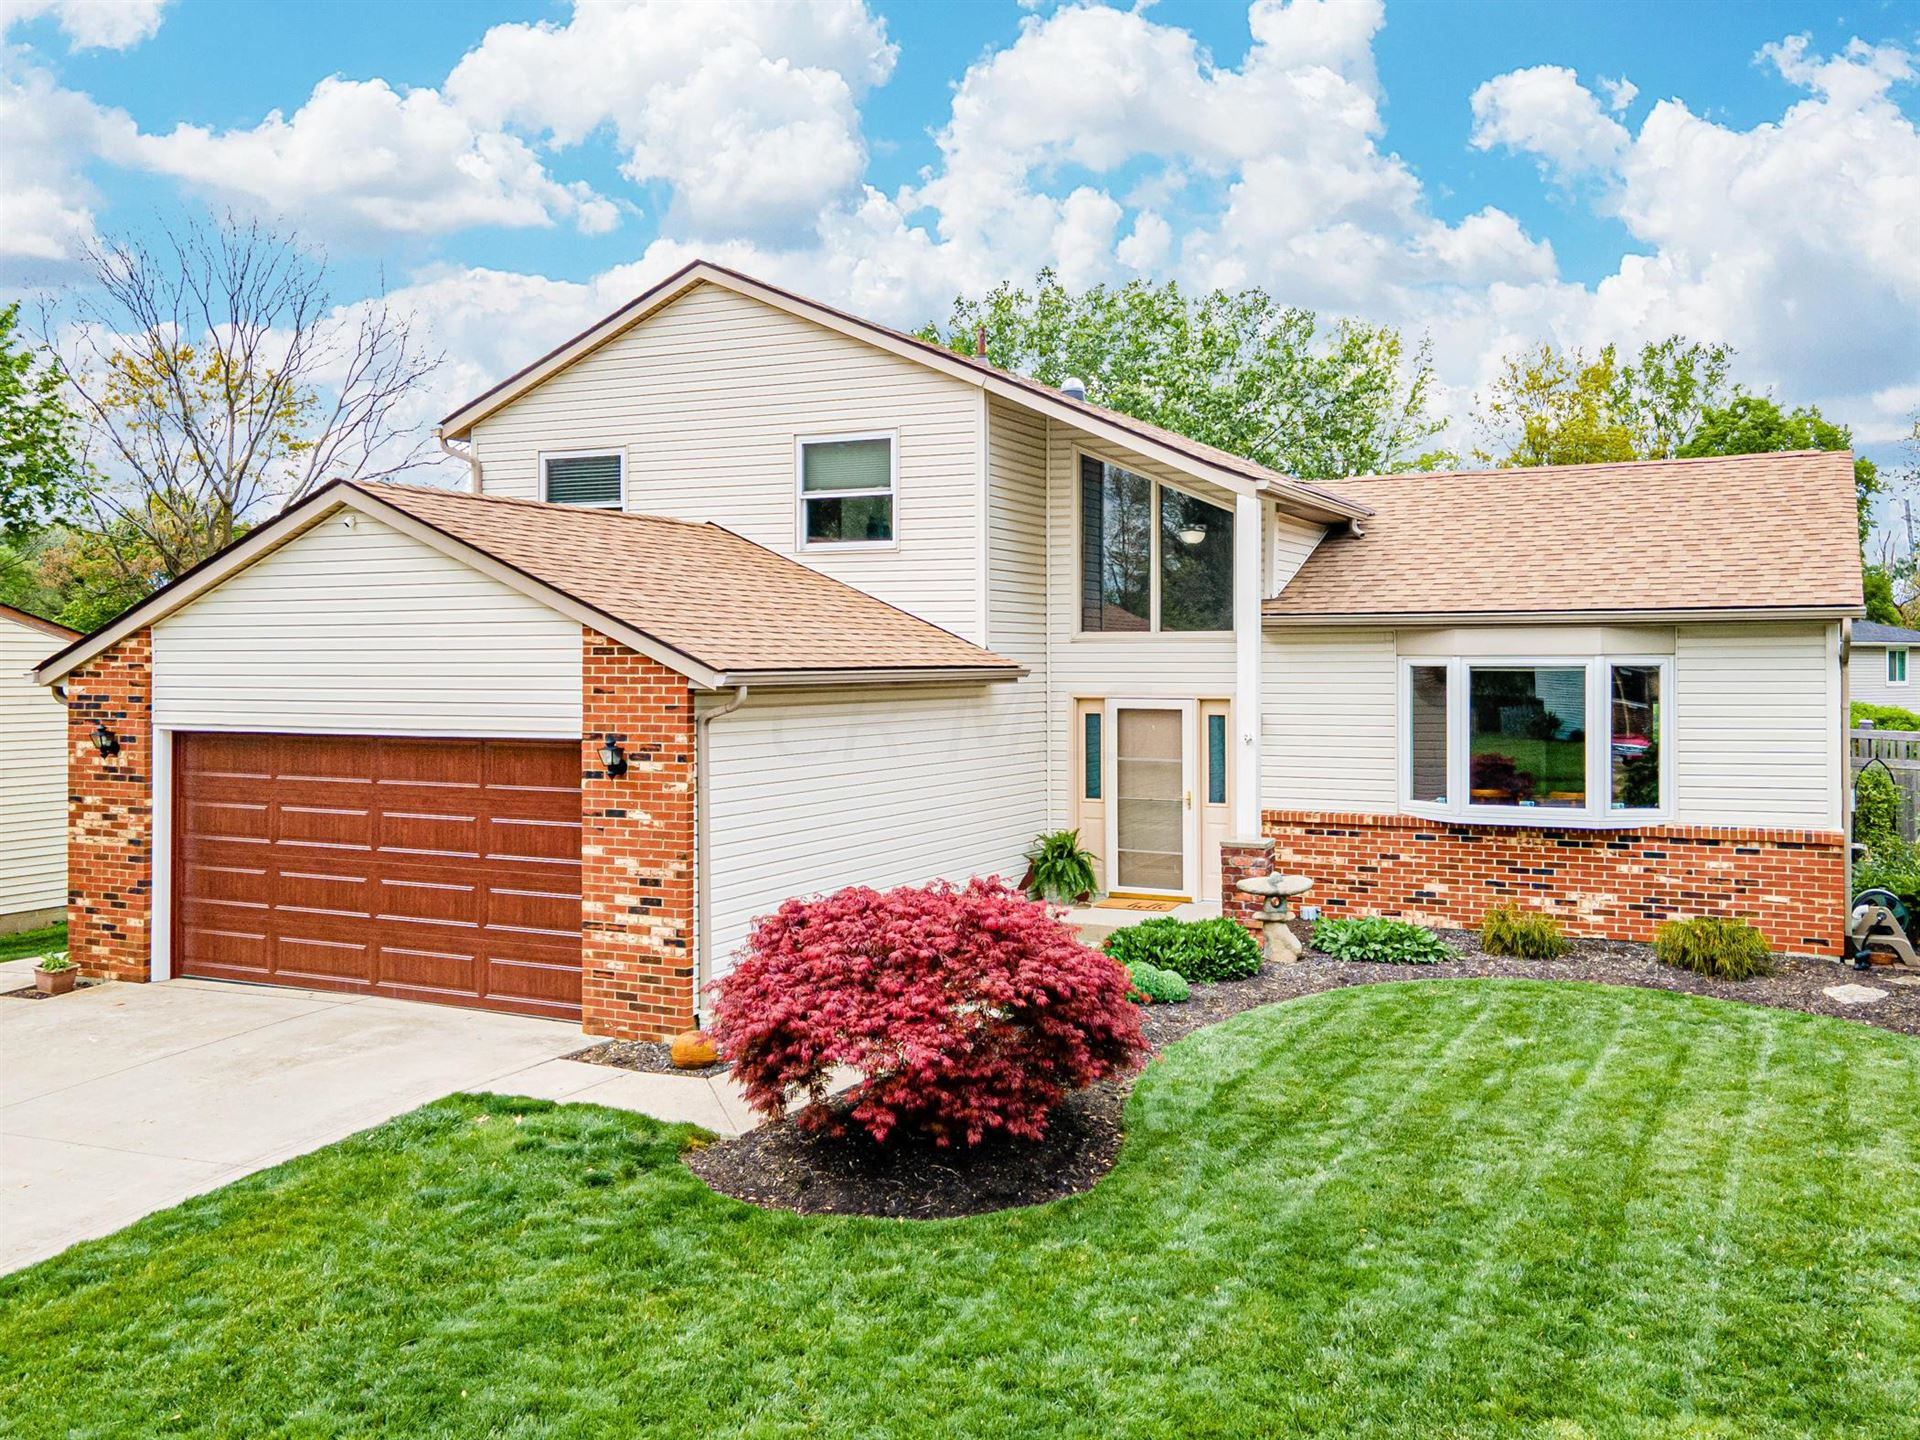 Photo of 1776 Gallo Drive, Powell, OH 43065 (MLS # 221015119)